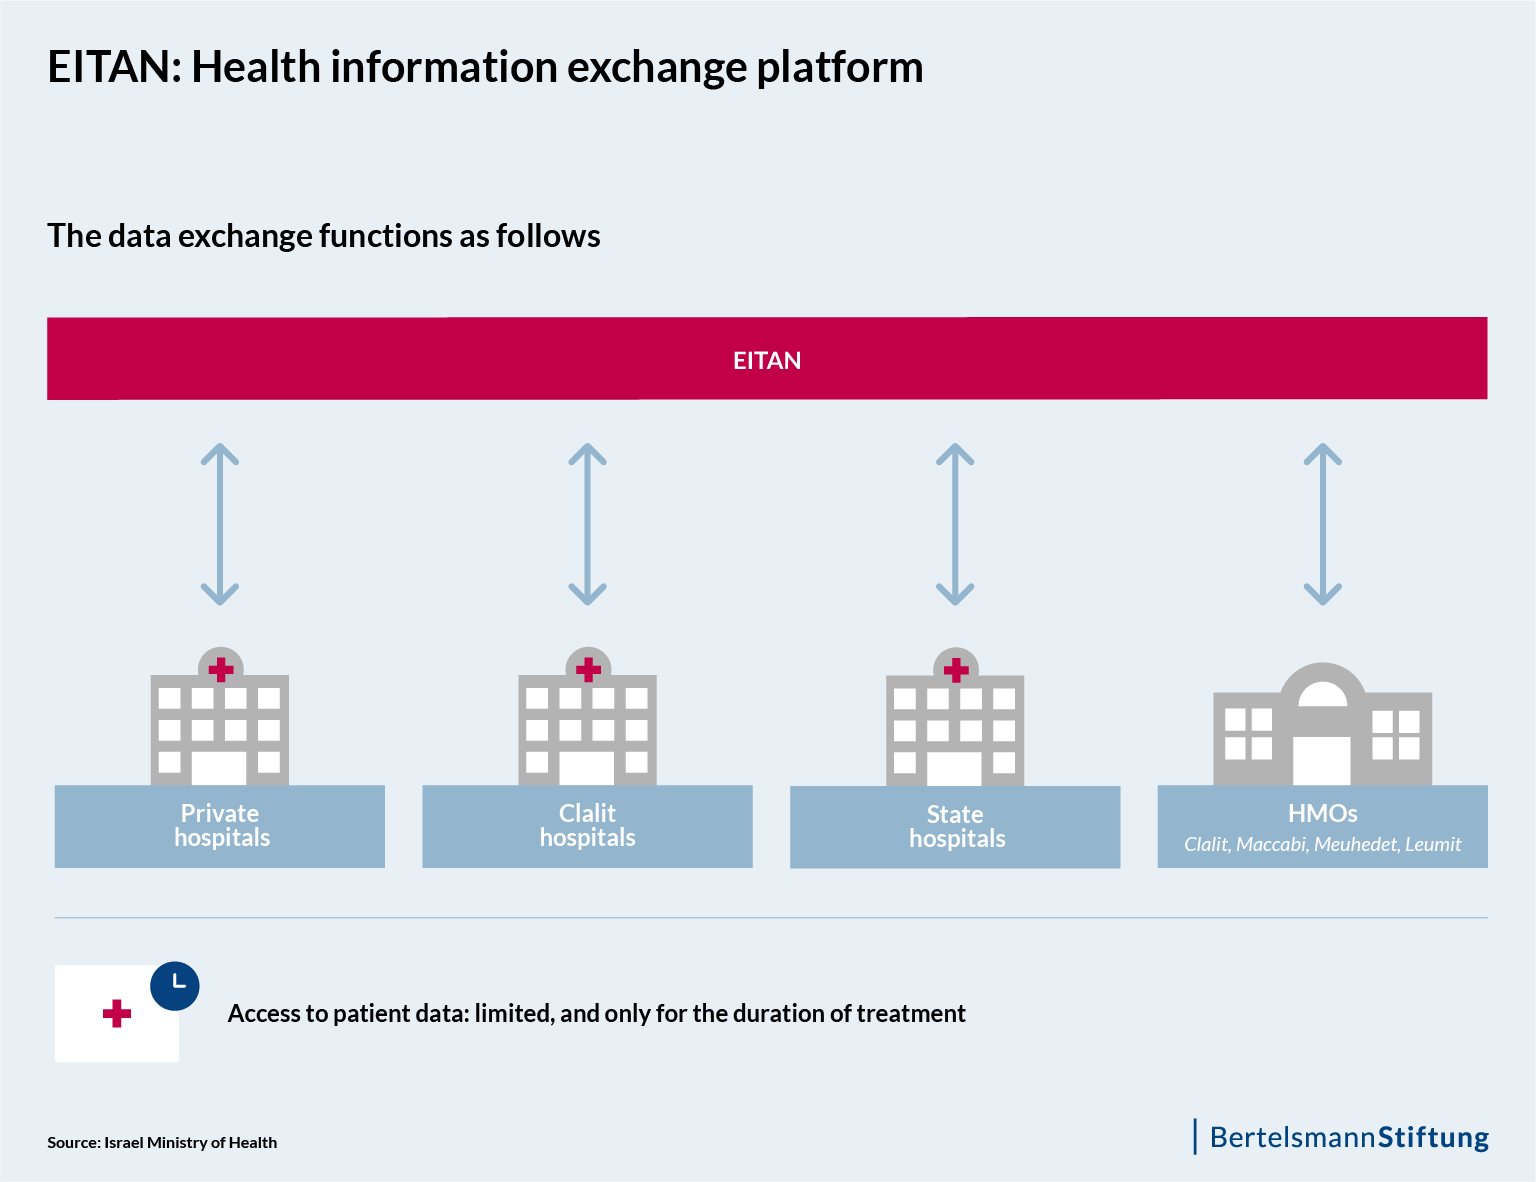 Fig 2: EITAN - Health information exchange platform